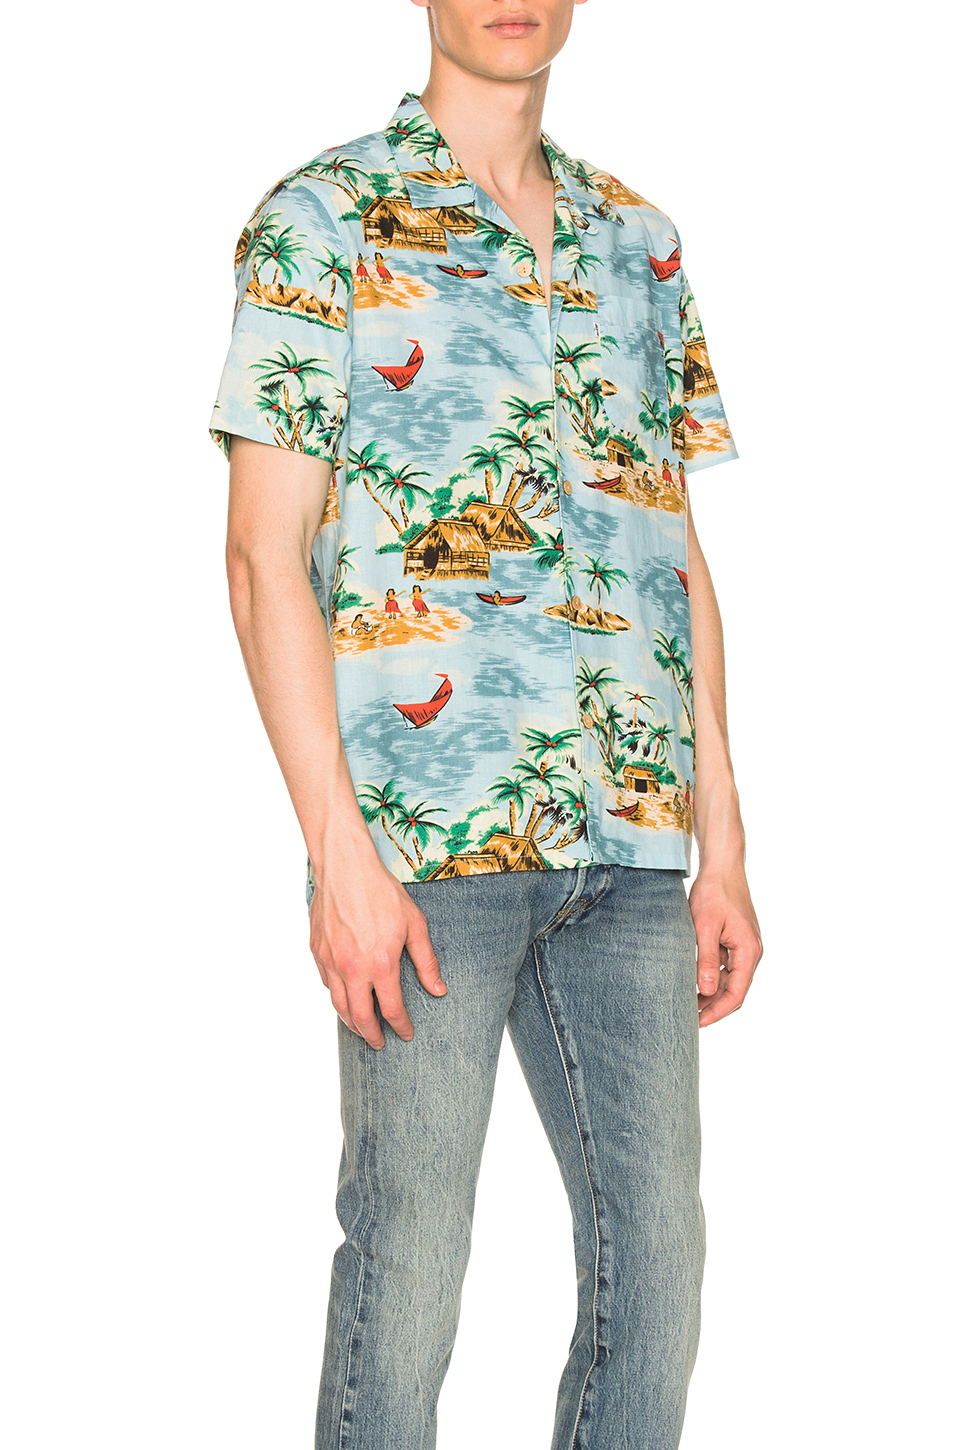 3092c7e66 Buy Original LEVI'S Premium Hawaiian Shirt at Indonesia | BOBOBOBO